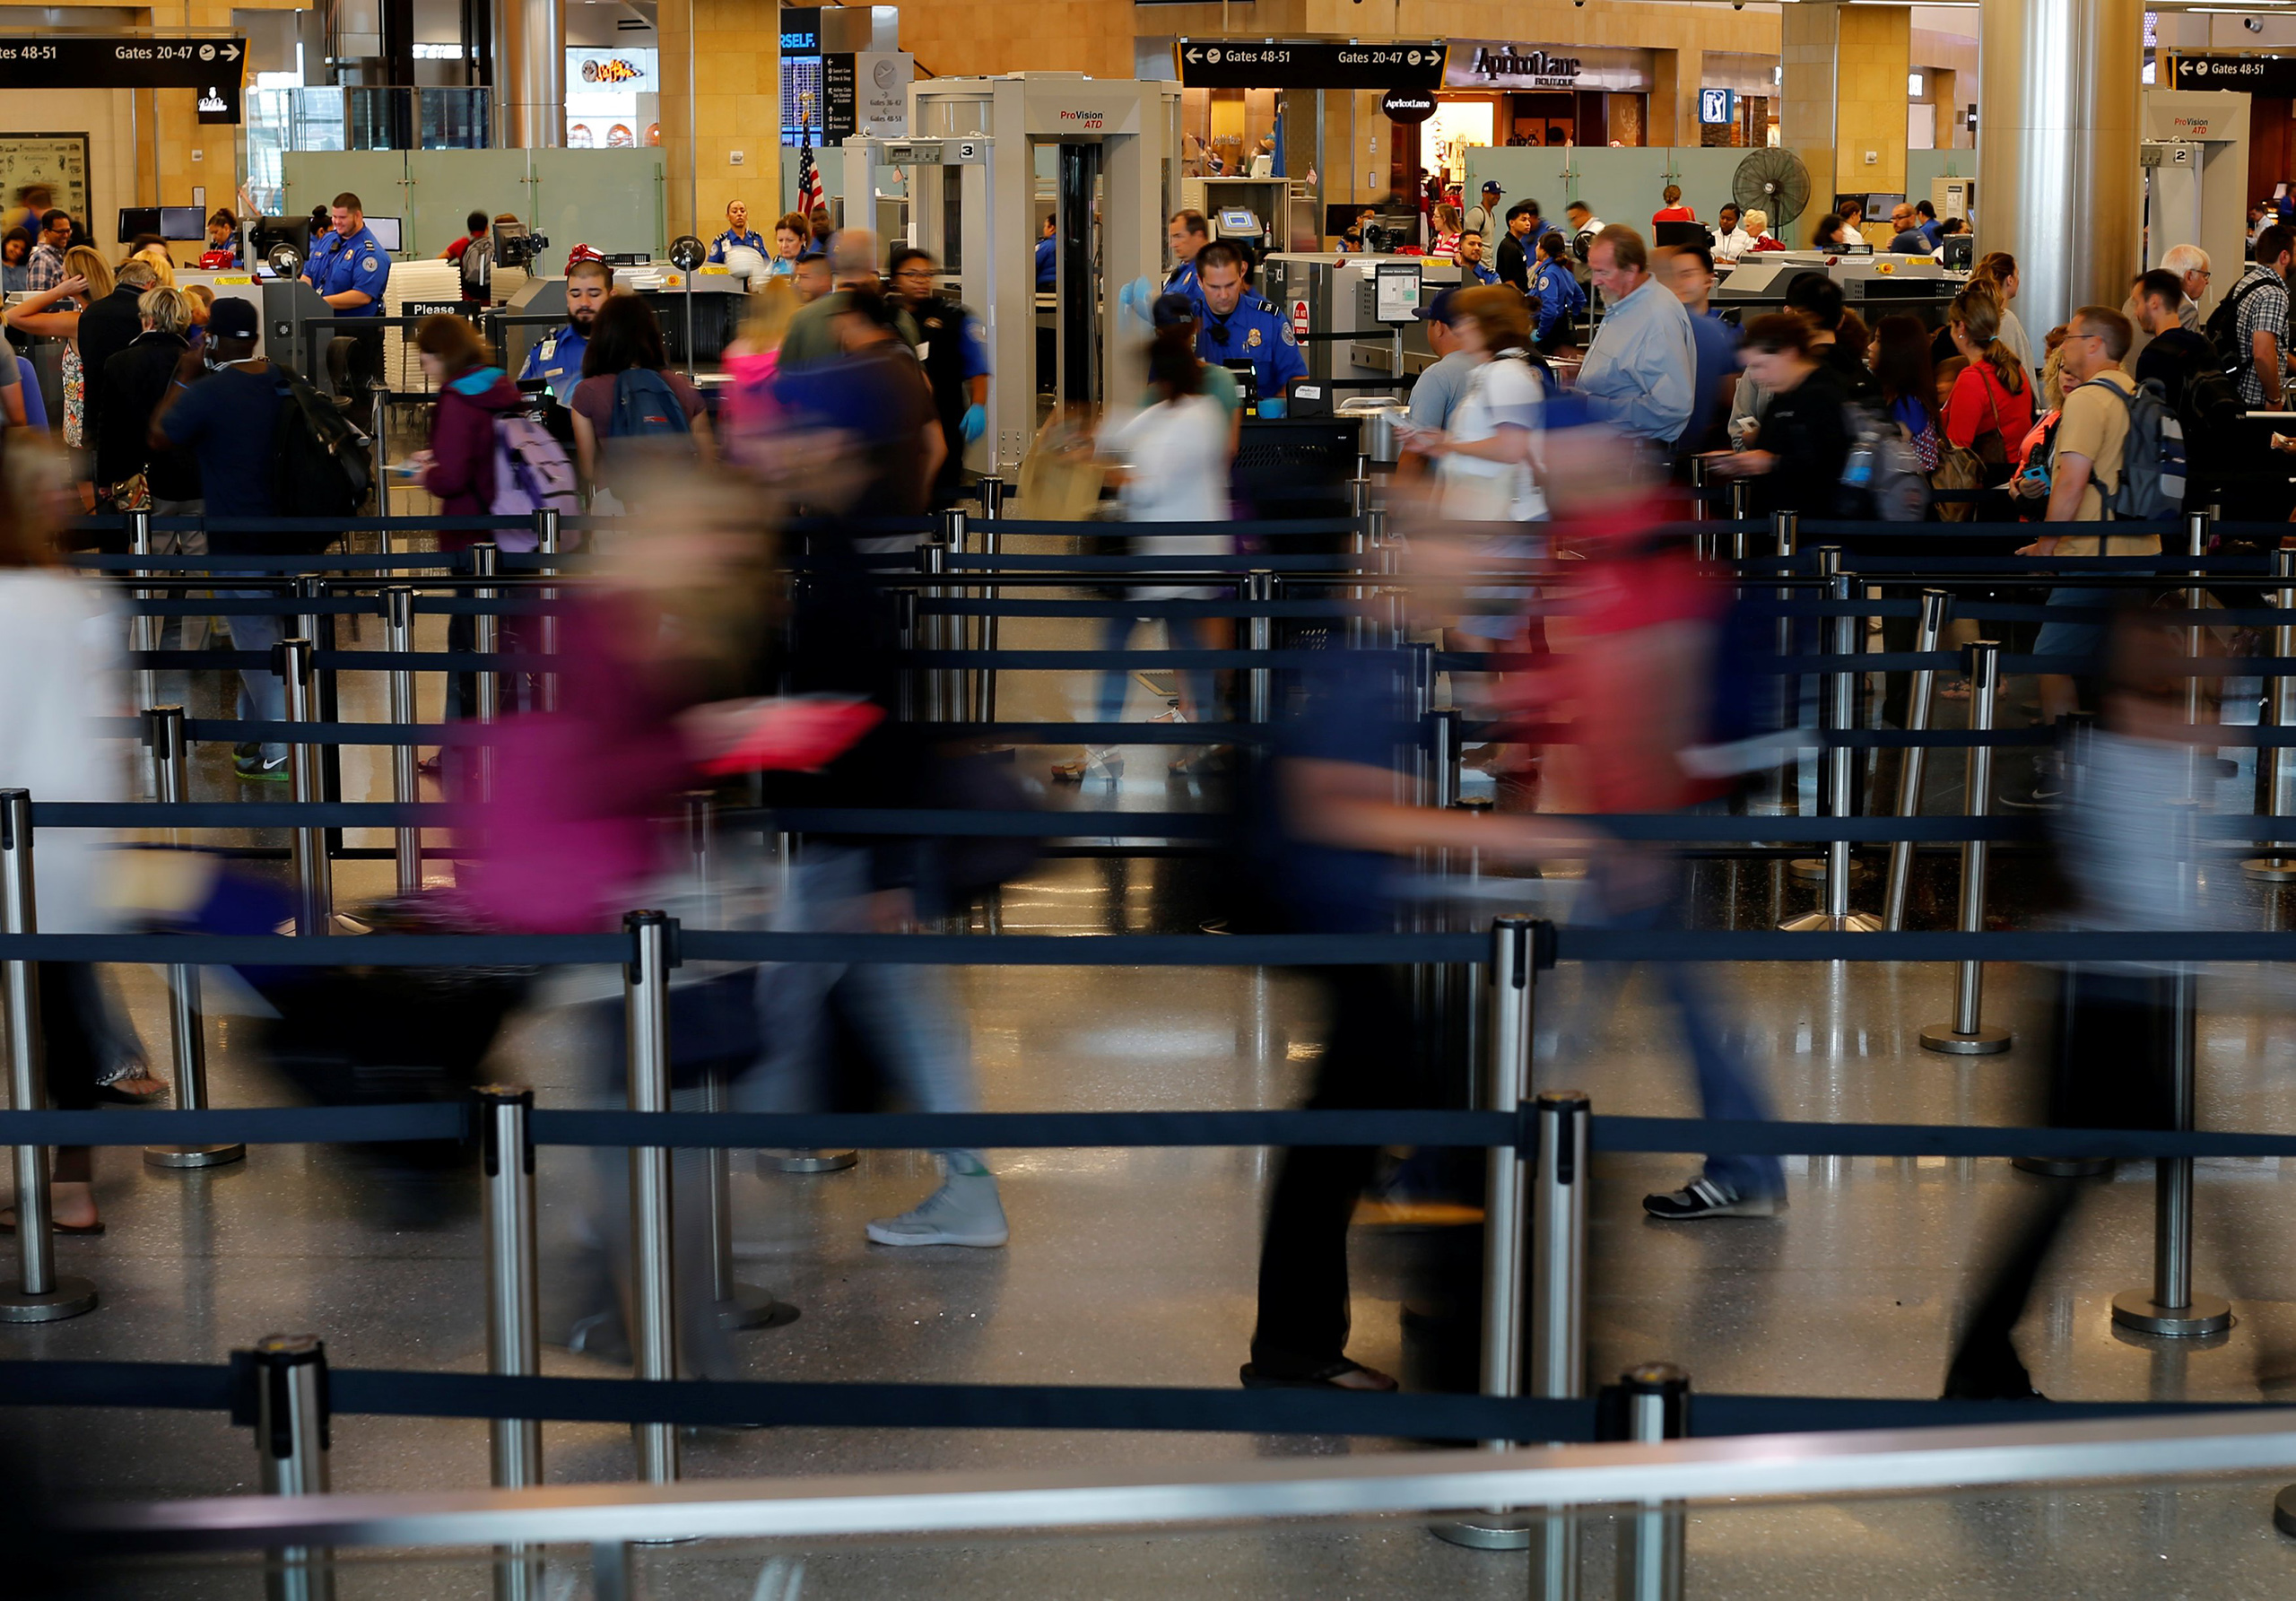 Travelers makes their way through TSA security at Lindbergh Field airport in San Diego, Calif., July 1, 2016.